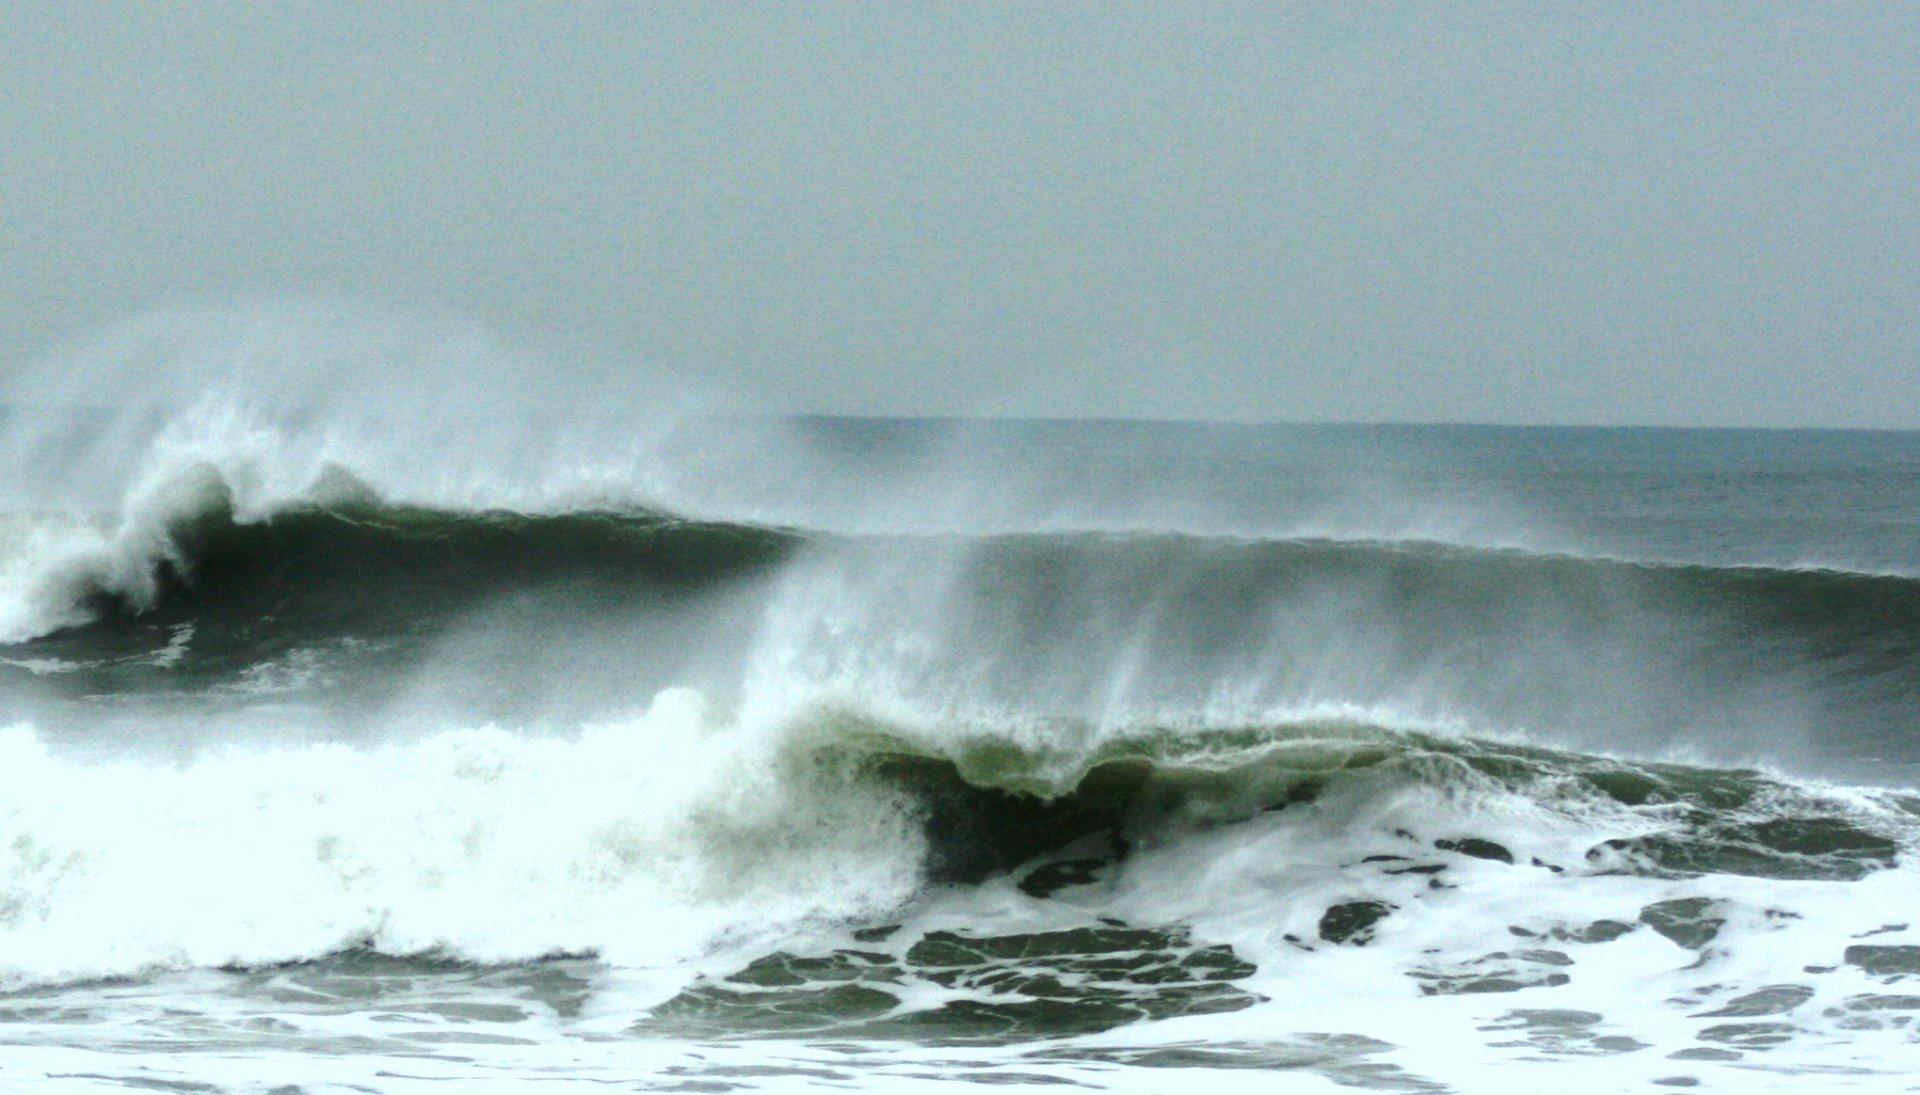 sean@northshorebude.com's photo of Bude - Summerleaze